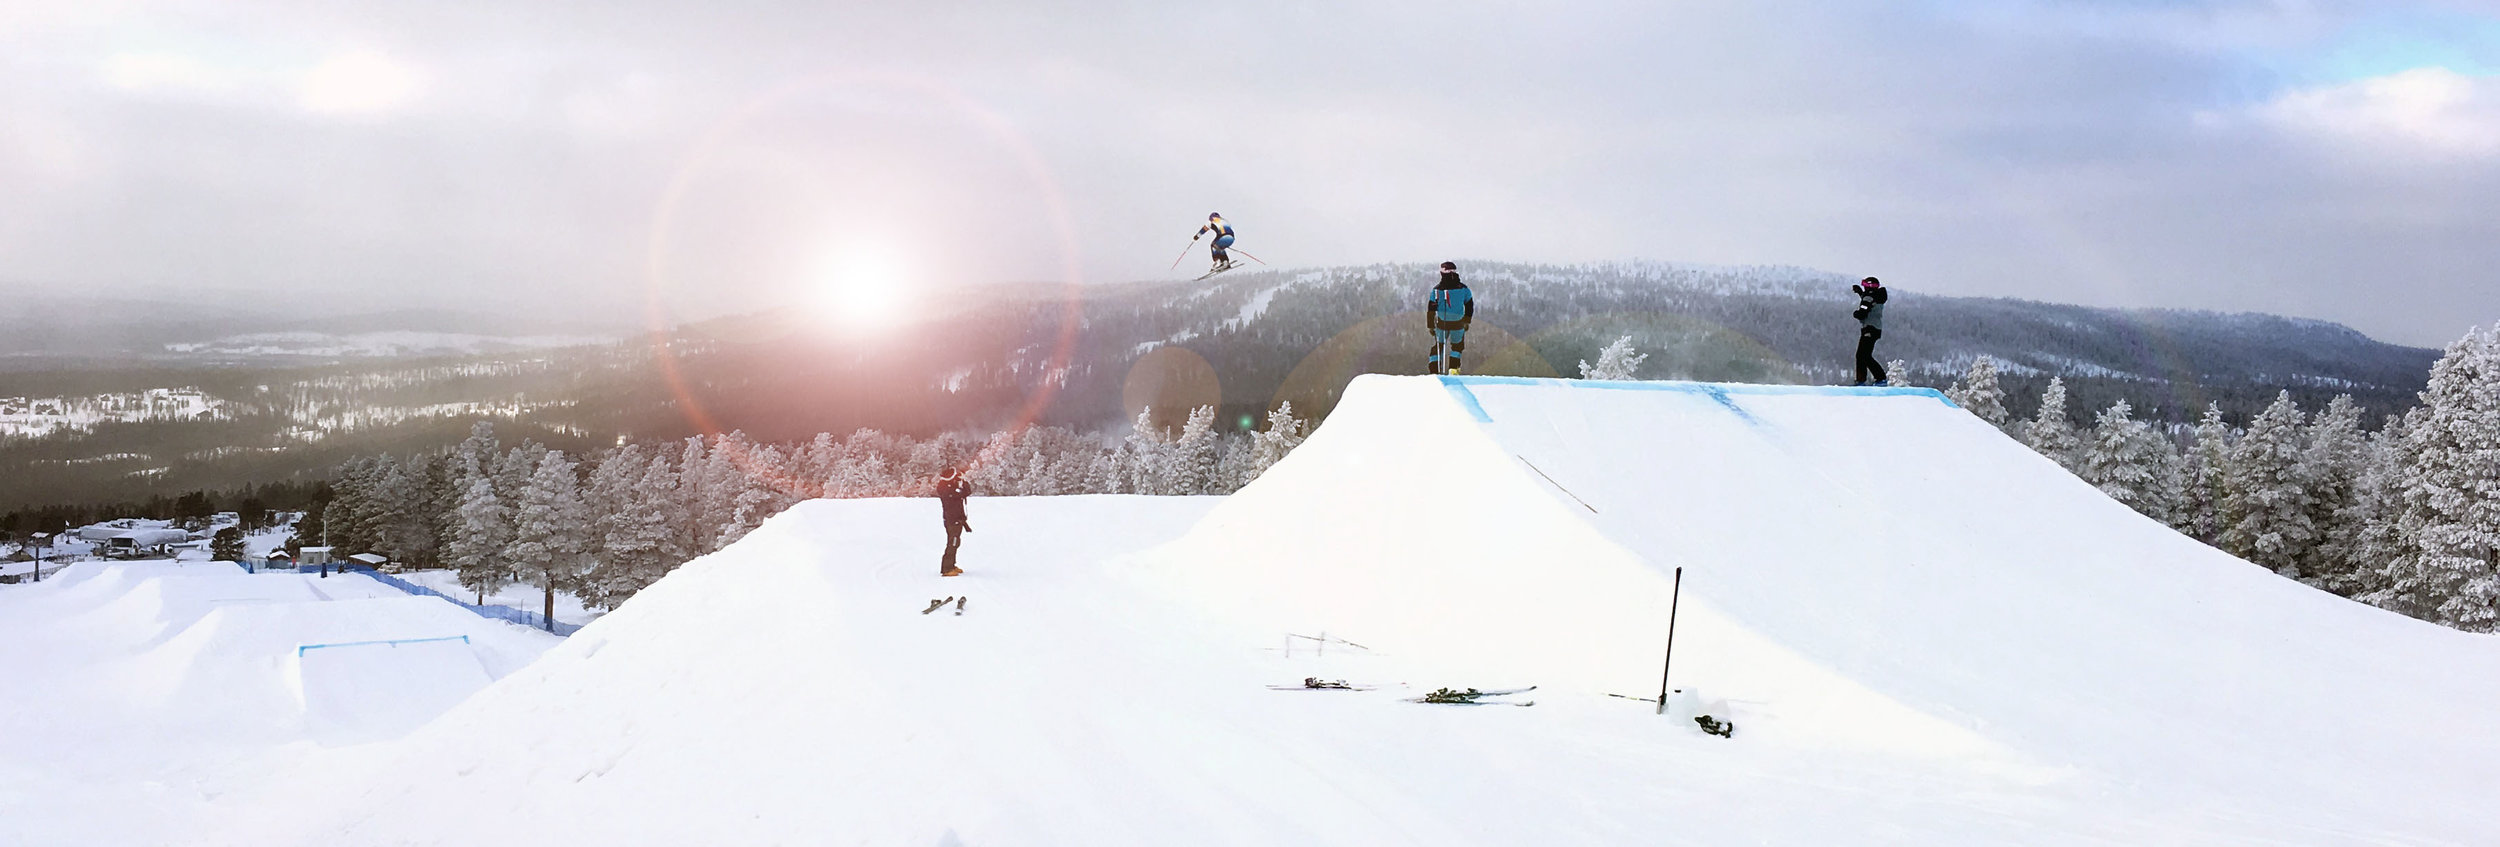 We are very happy to have taken part of the excellent production and team in Idre for Skicross World Cup that SVT carried out and was Host for.